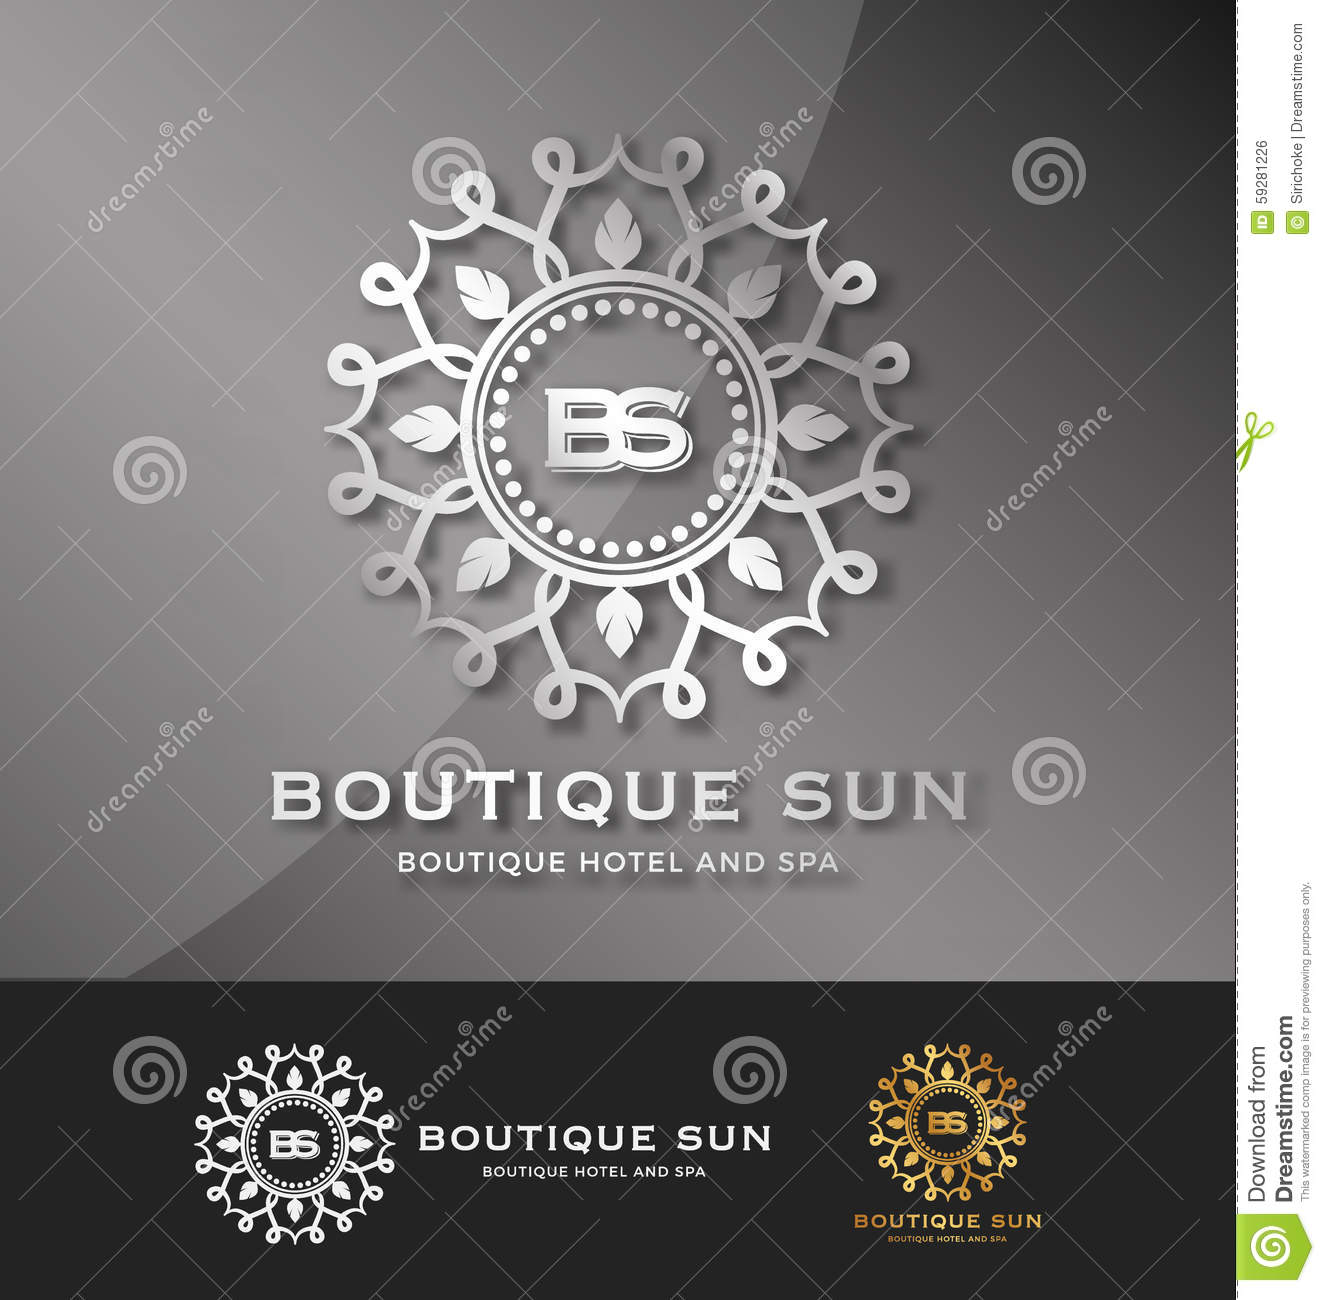 Boutique hotel and spa logo design stock vector image for Hotel logo design samples